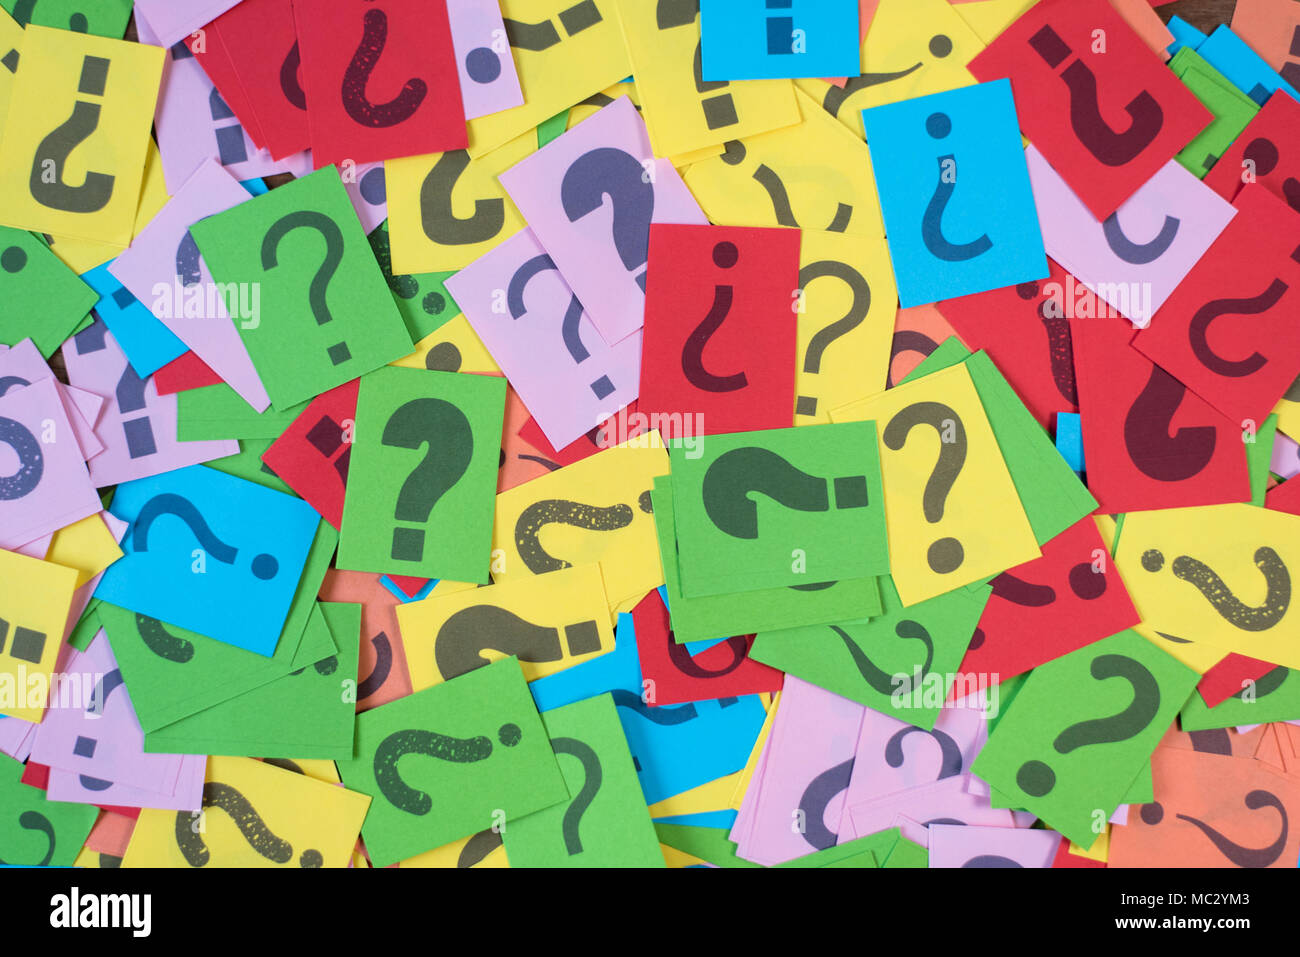 colorful paper with question mark as background. mystery,diversity,questions concept - Stock Image